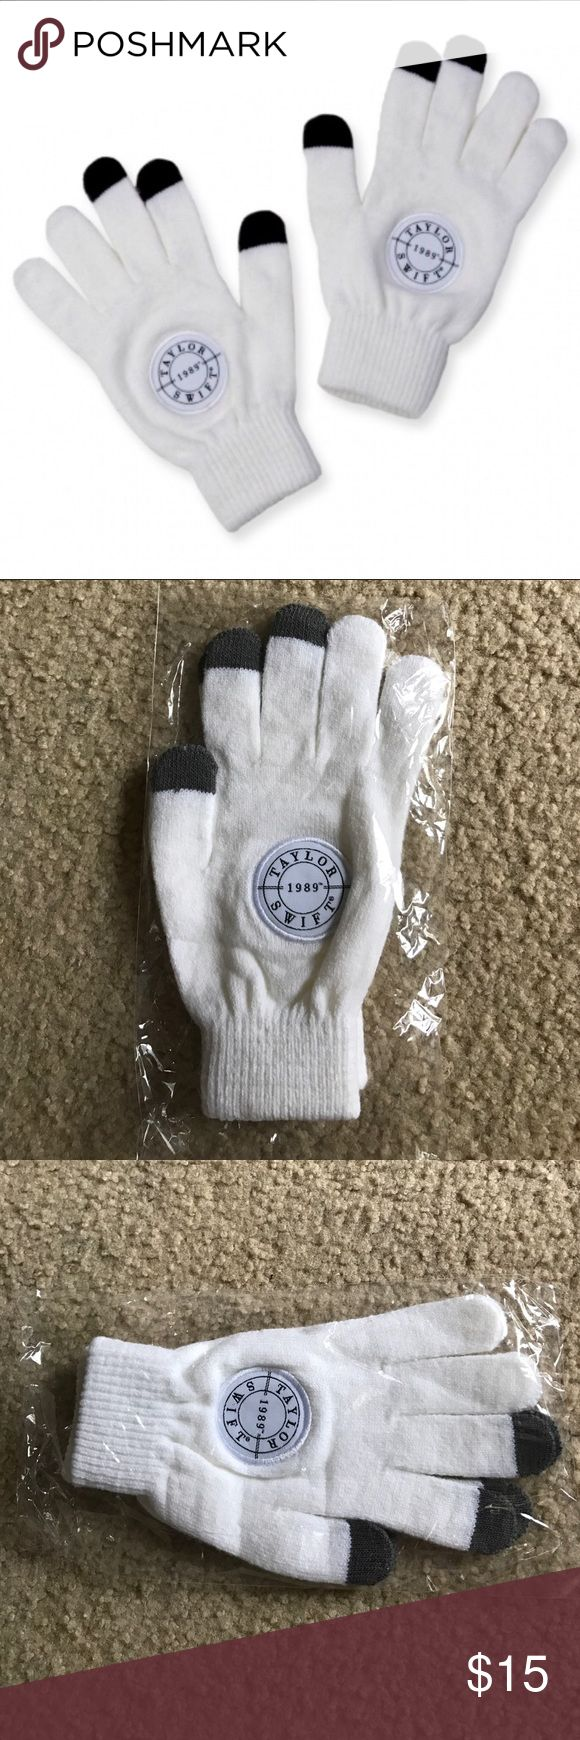 Taylor Swift 1989 Texting Gloves New These are a brand new in package pair of texting gloves with Taylor Swift 1989 patched on the back of both gloves. These are completely sold out in the online store and are hard to find!! Taylor Swift Accessories Gloves & Mittens